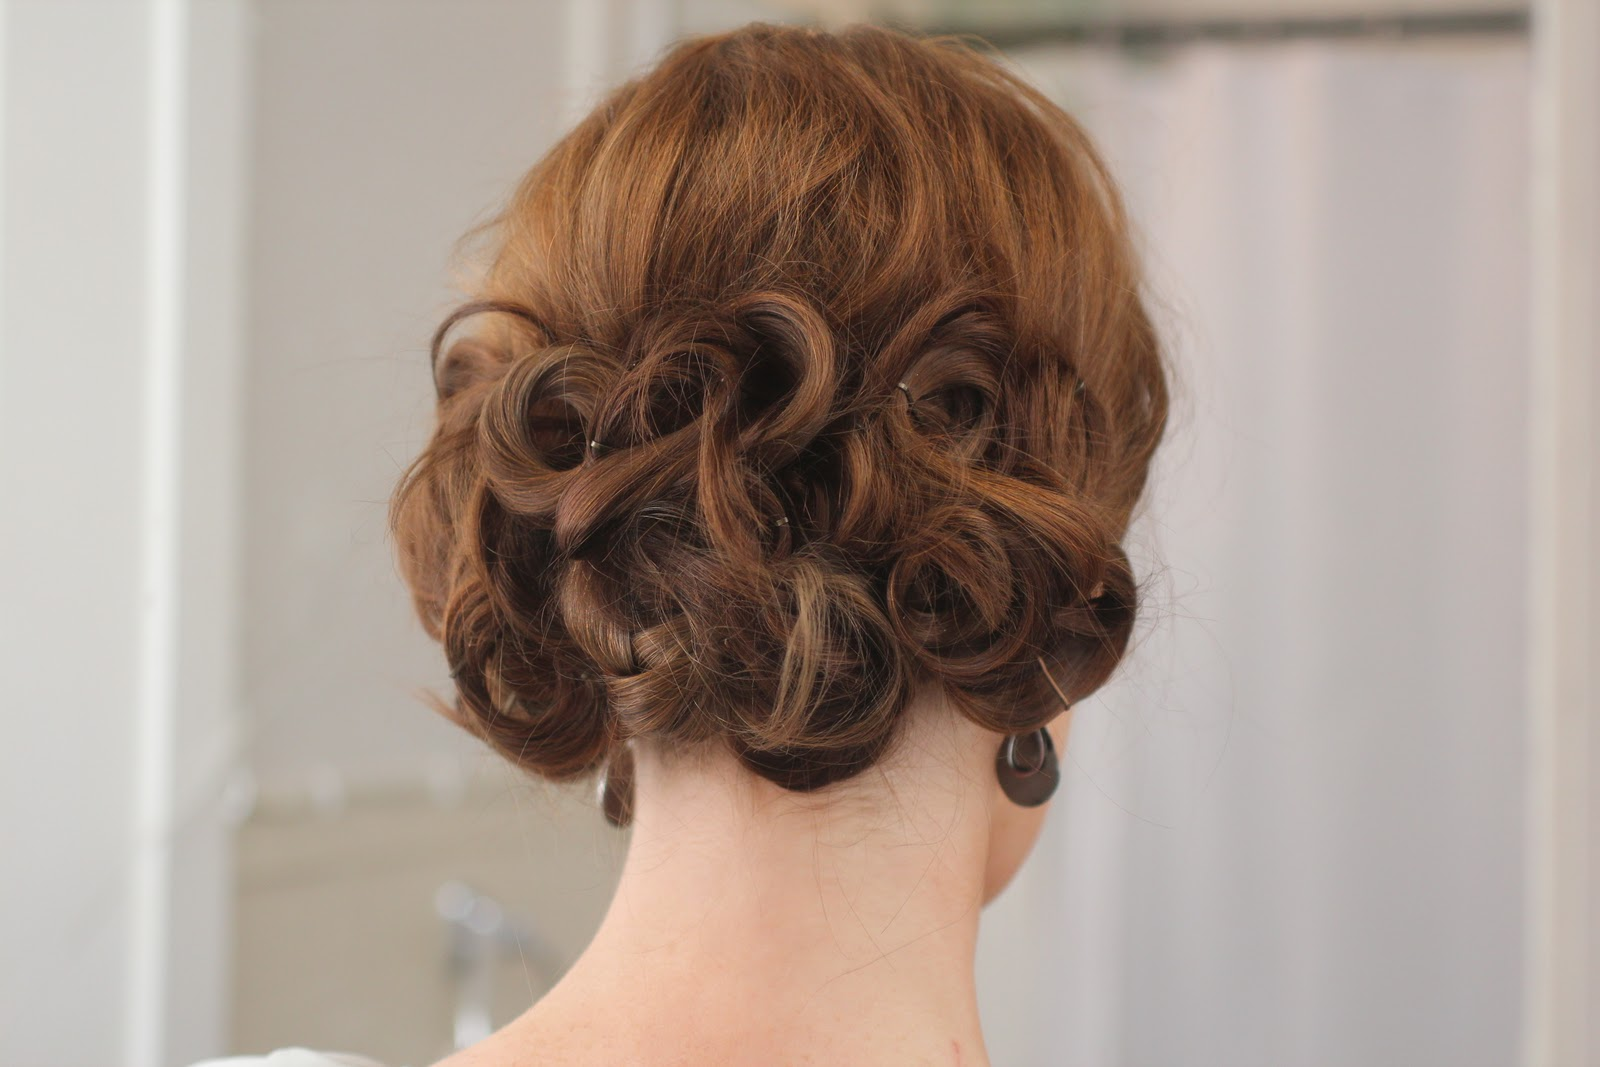 How to Style a Loopy Low Updo